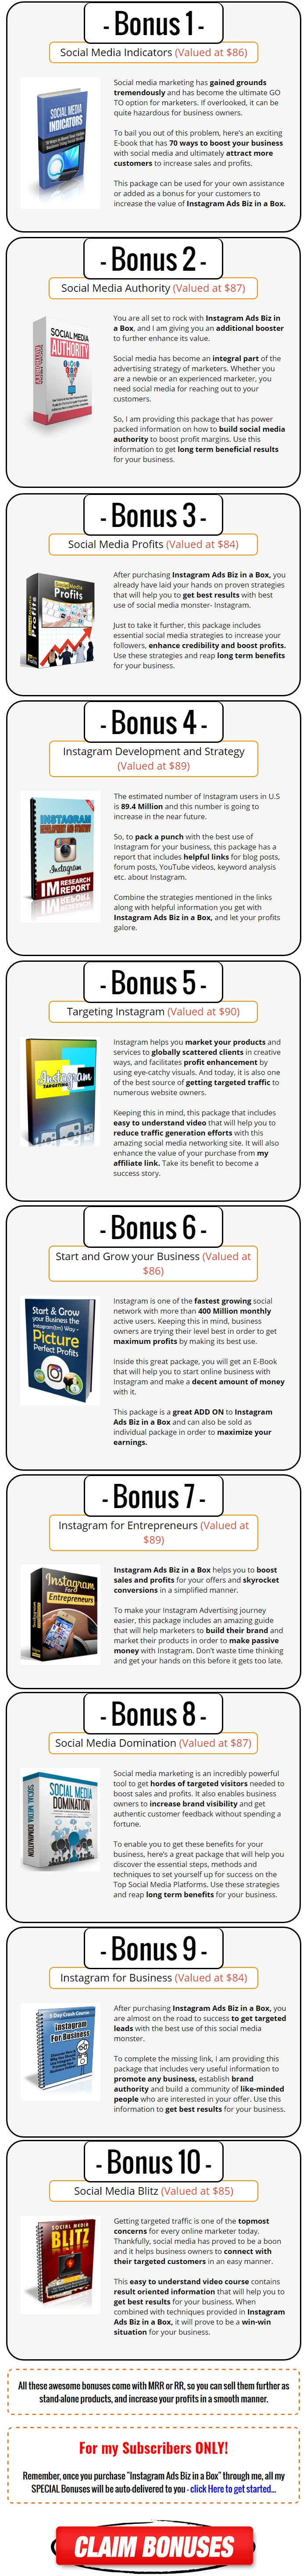 Instagram Ads Biz in a Box Monster PLR Bonus